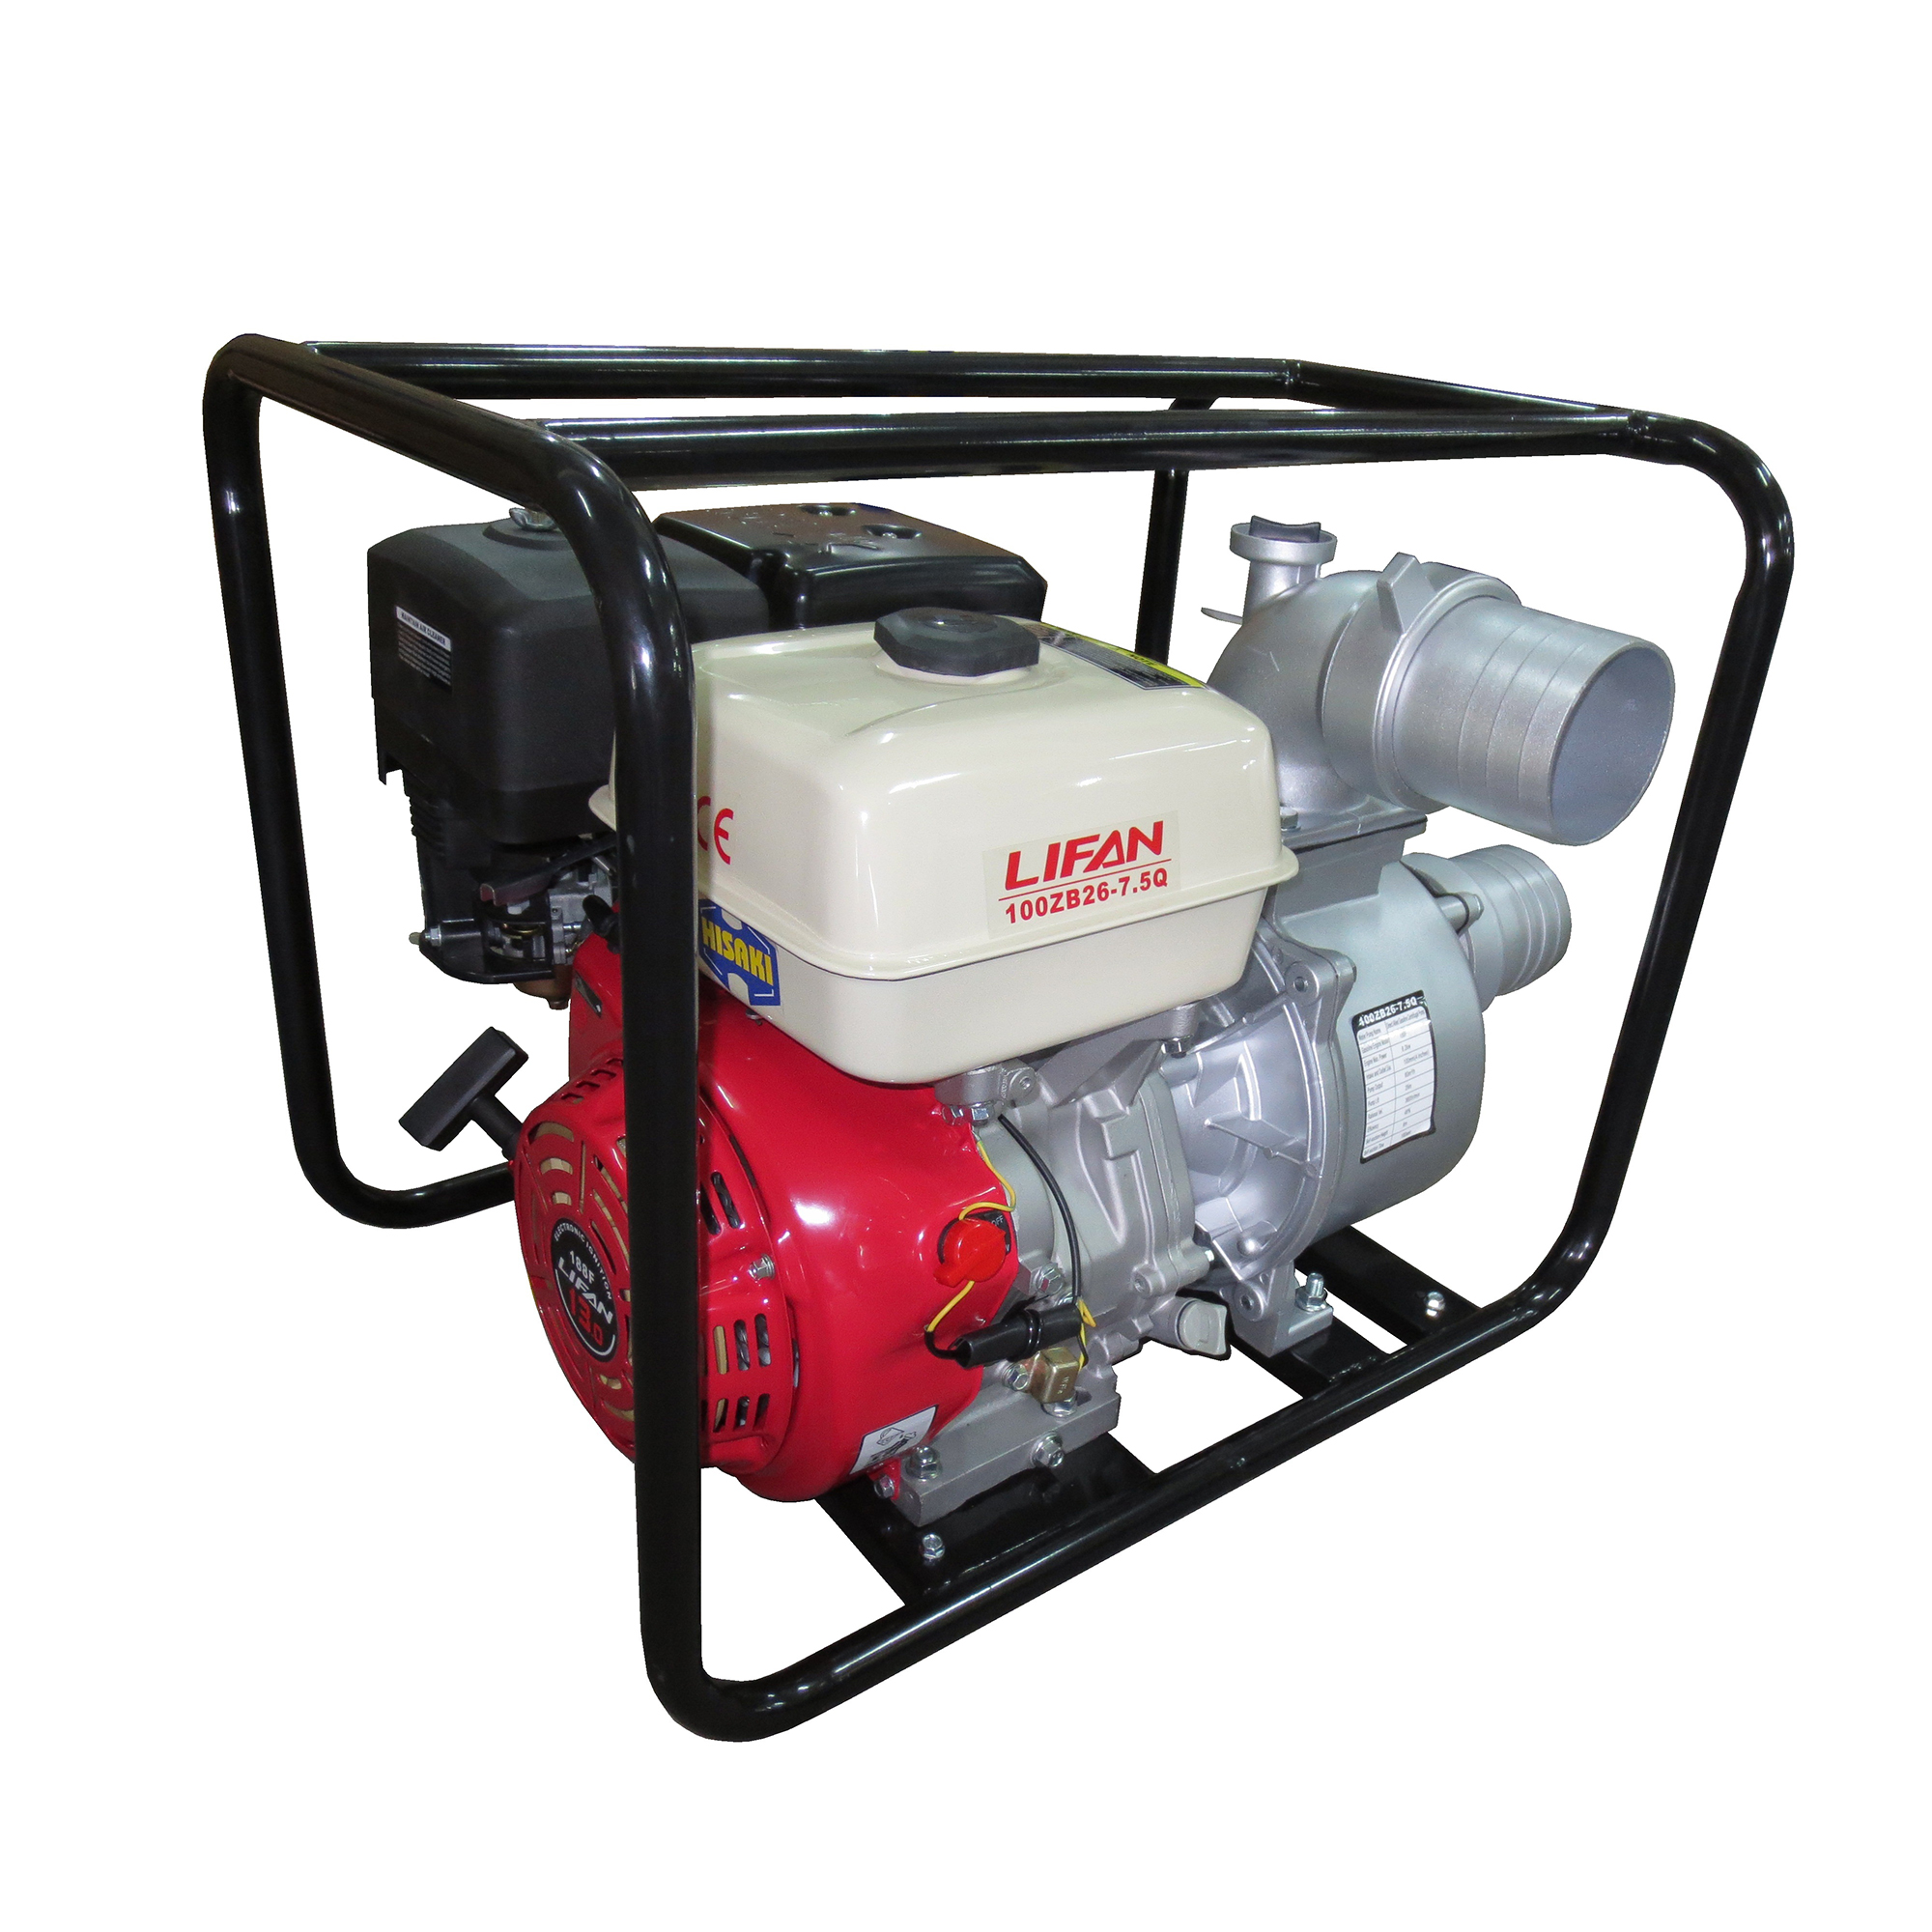 4″ SELF-PRIMING PUMP